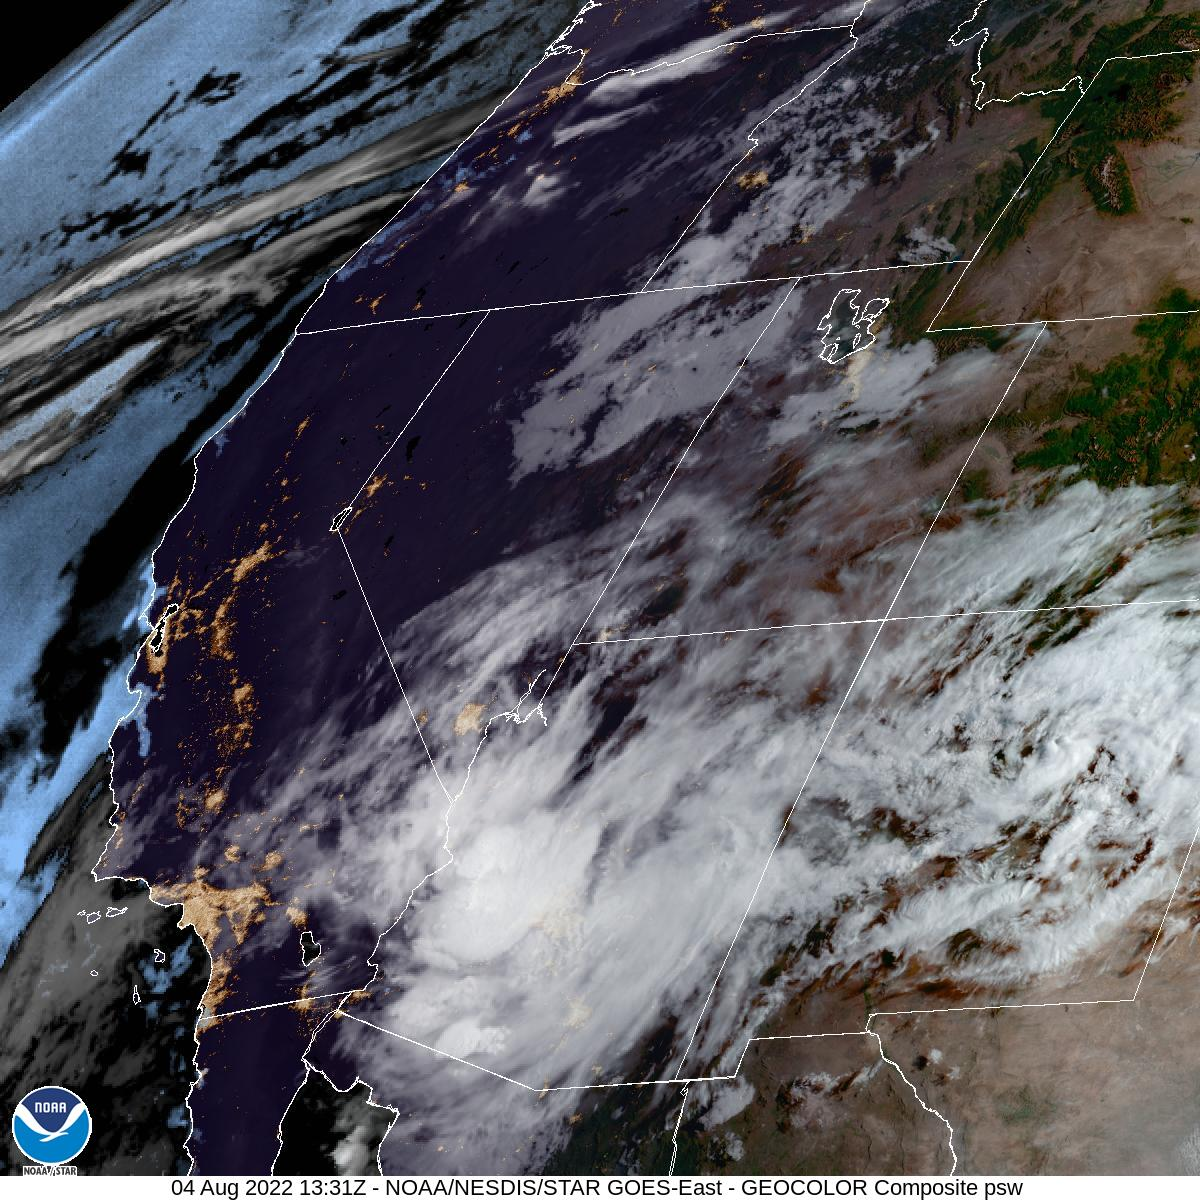 Latest GOES-16 Geocolor Image of Pacific Southwest sector